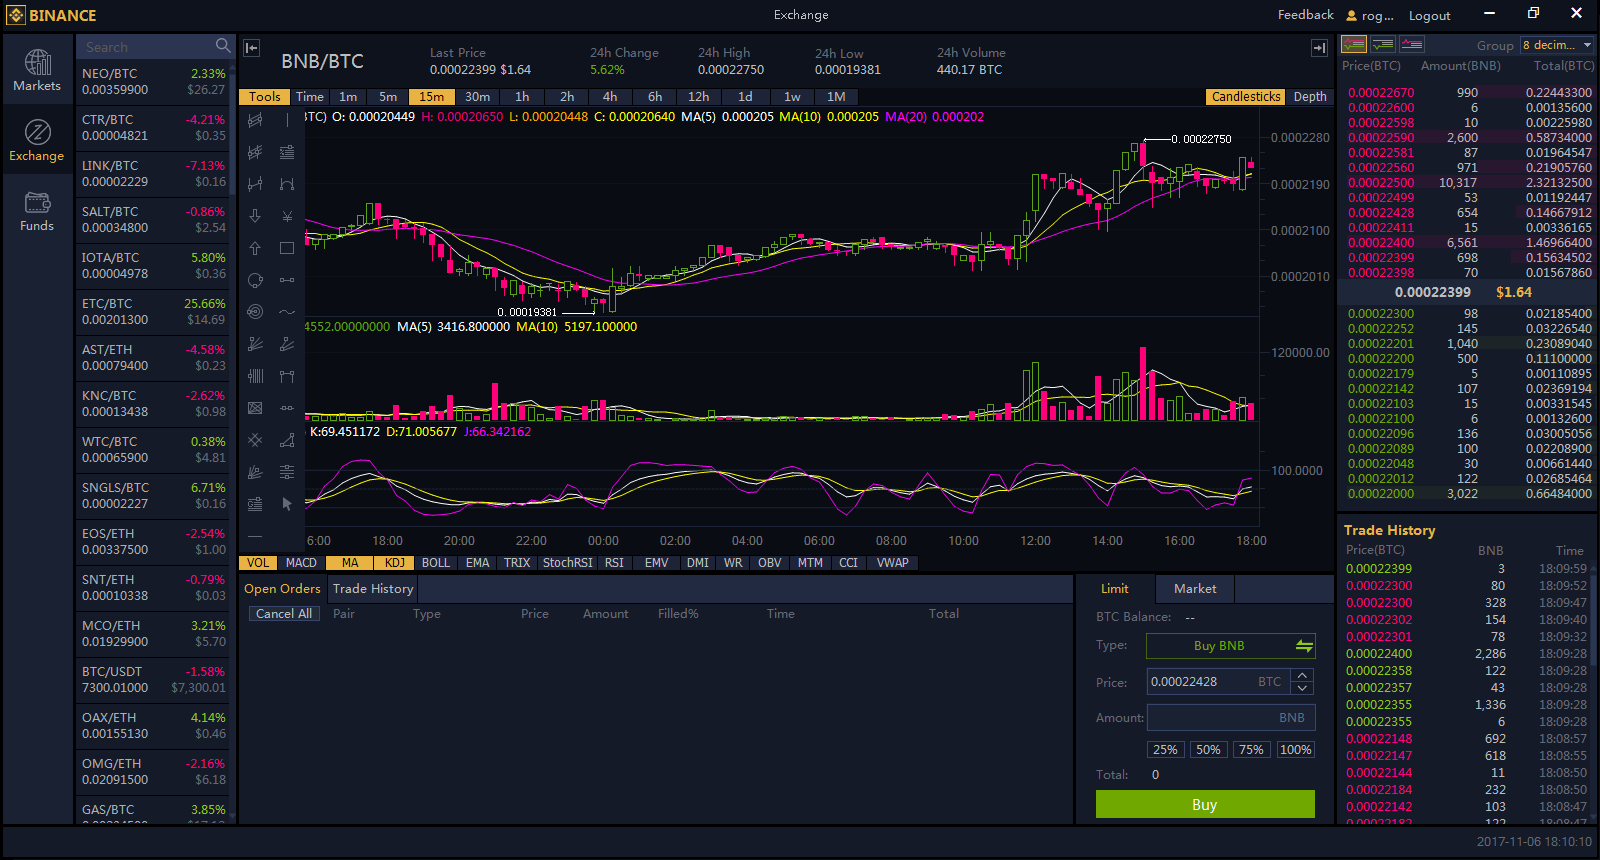 Binance Desktop App Trading Screen